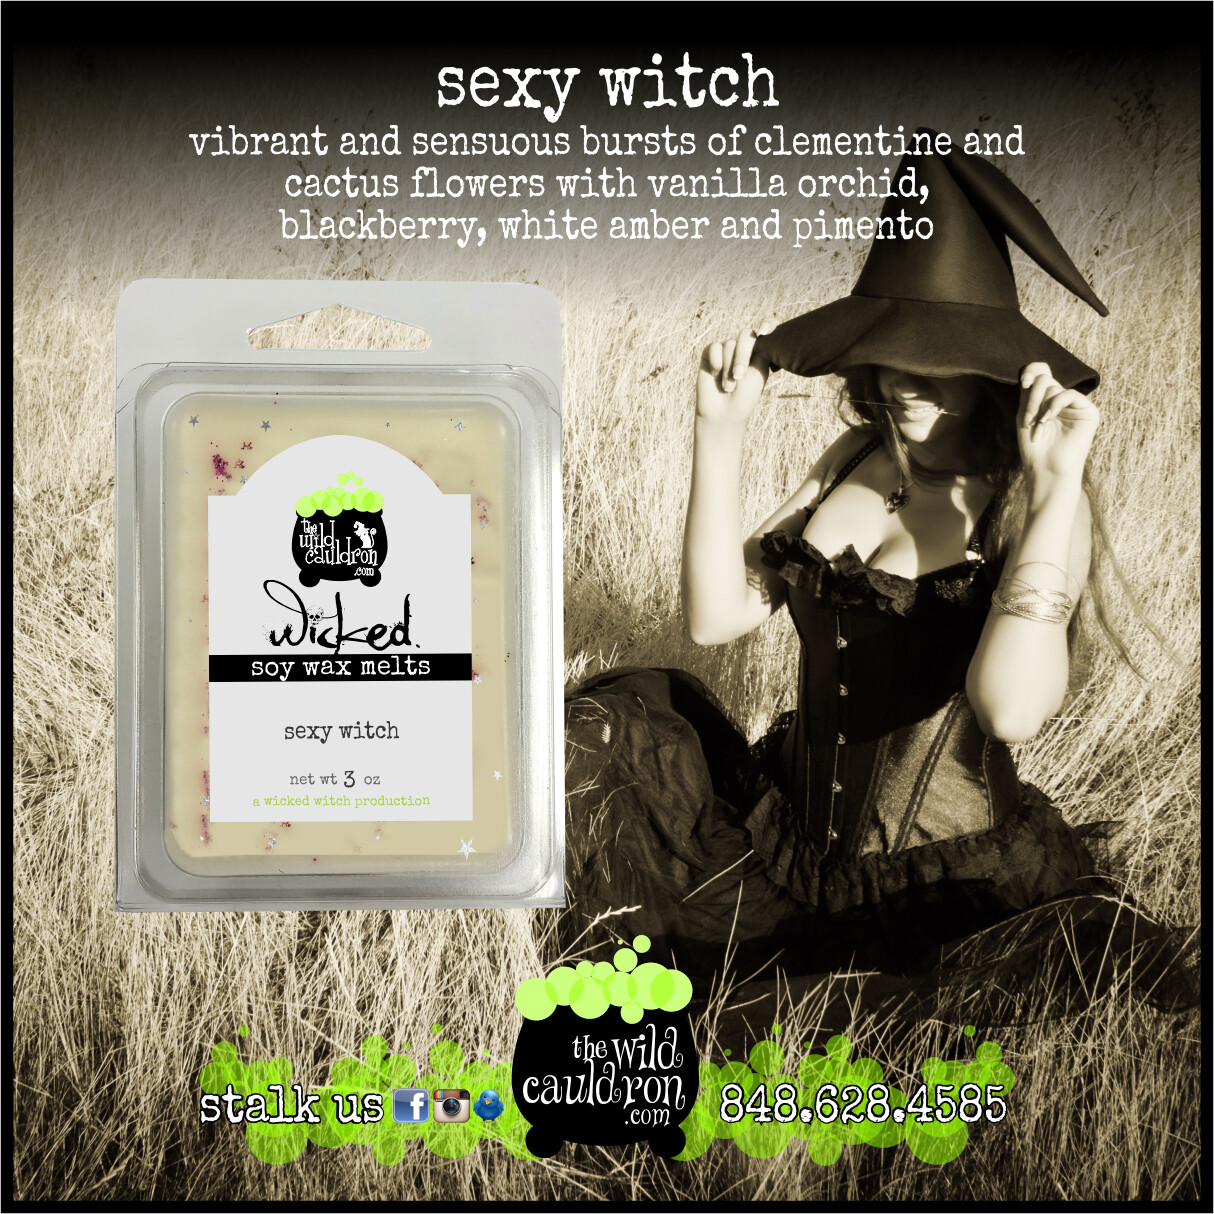 Sexy Witch Wicked Wax Melts